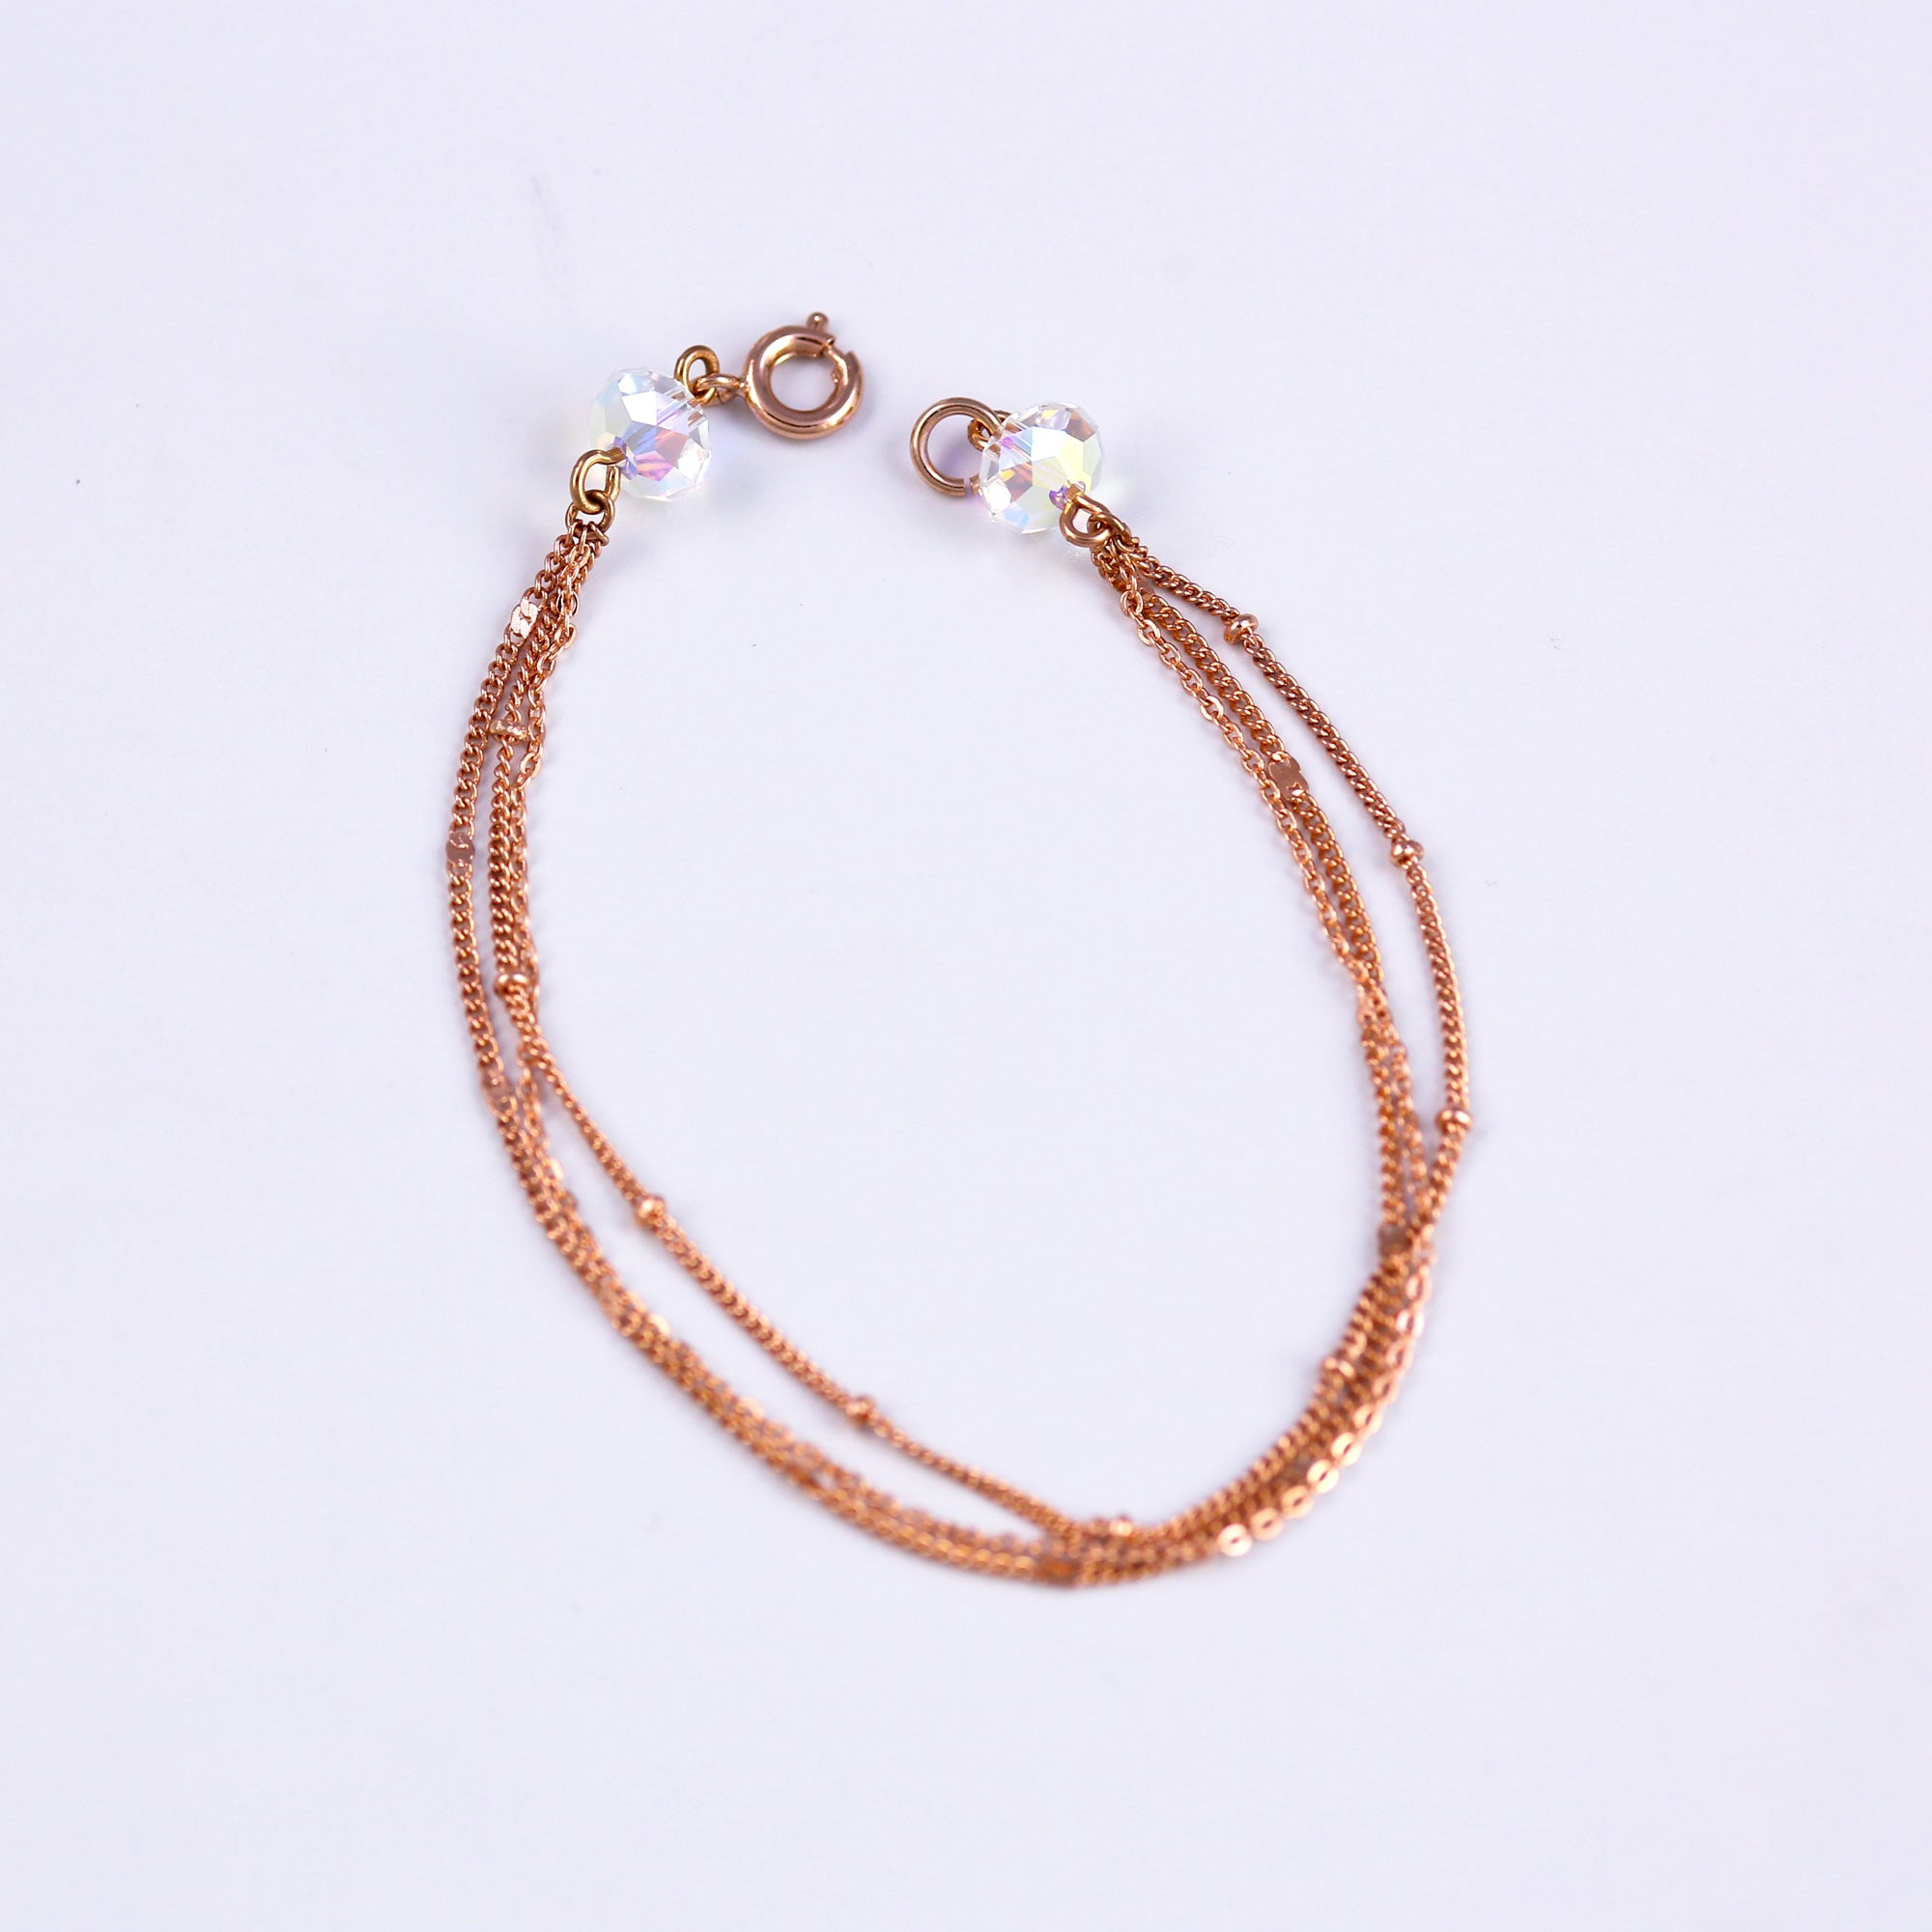 Rose Gold & Iridescent Bead Bridal Satellite Bracelet